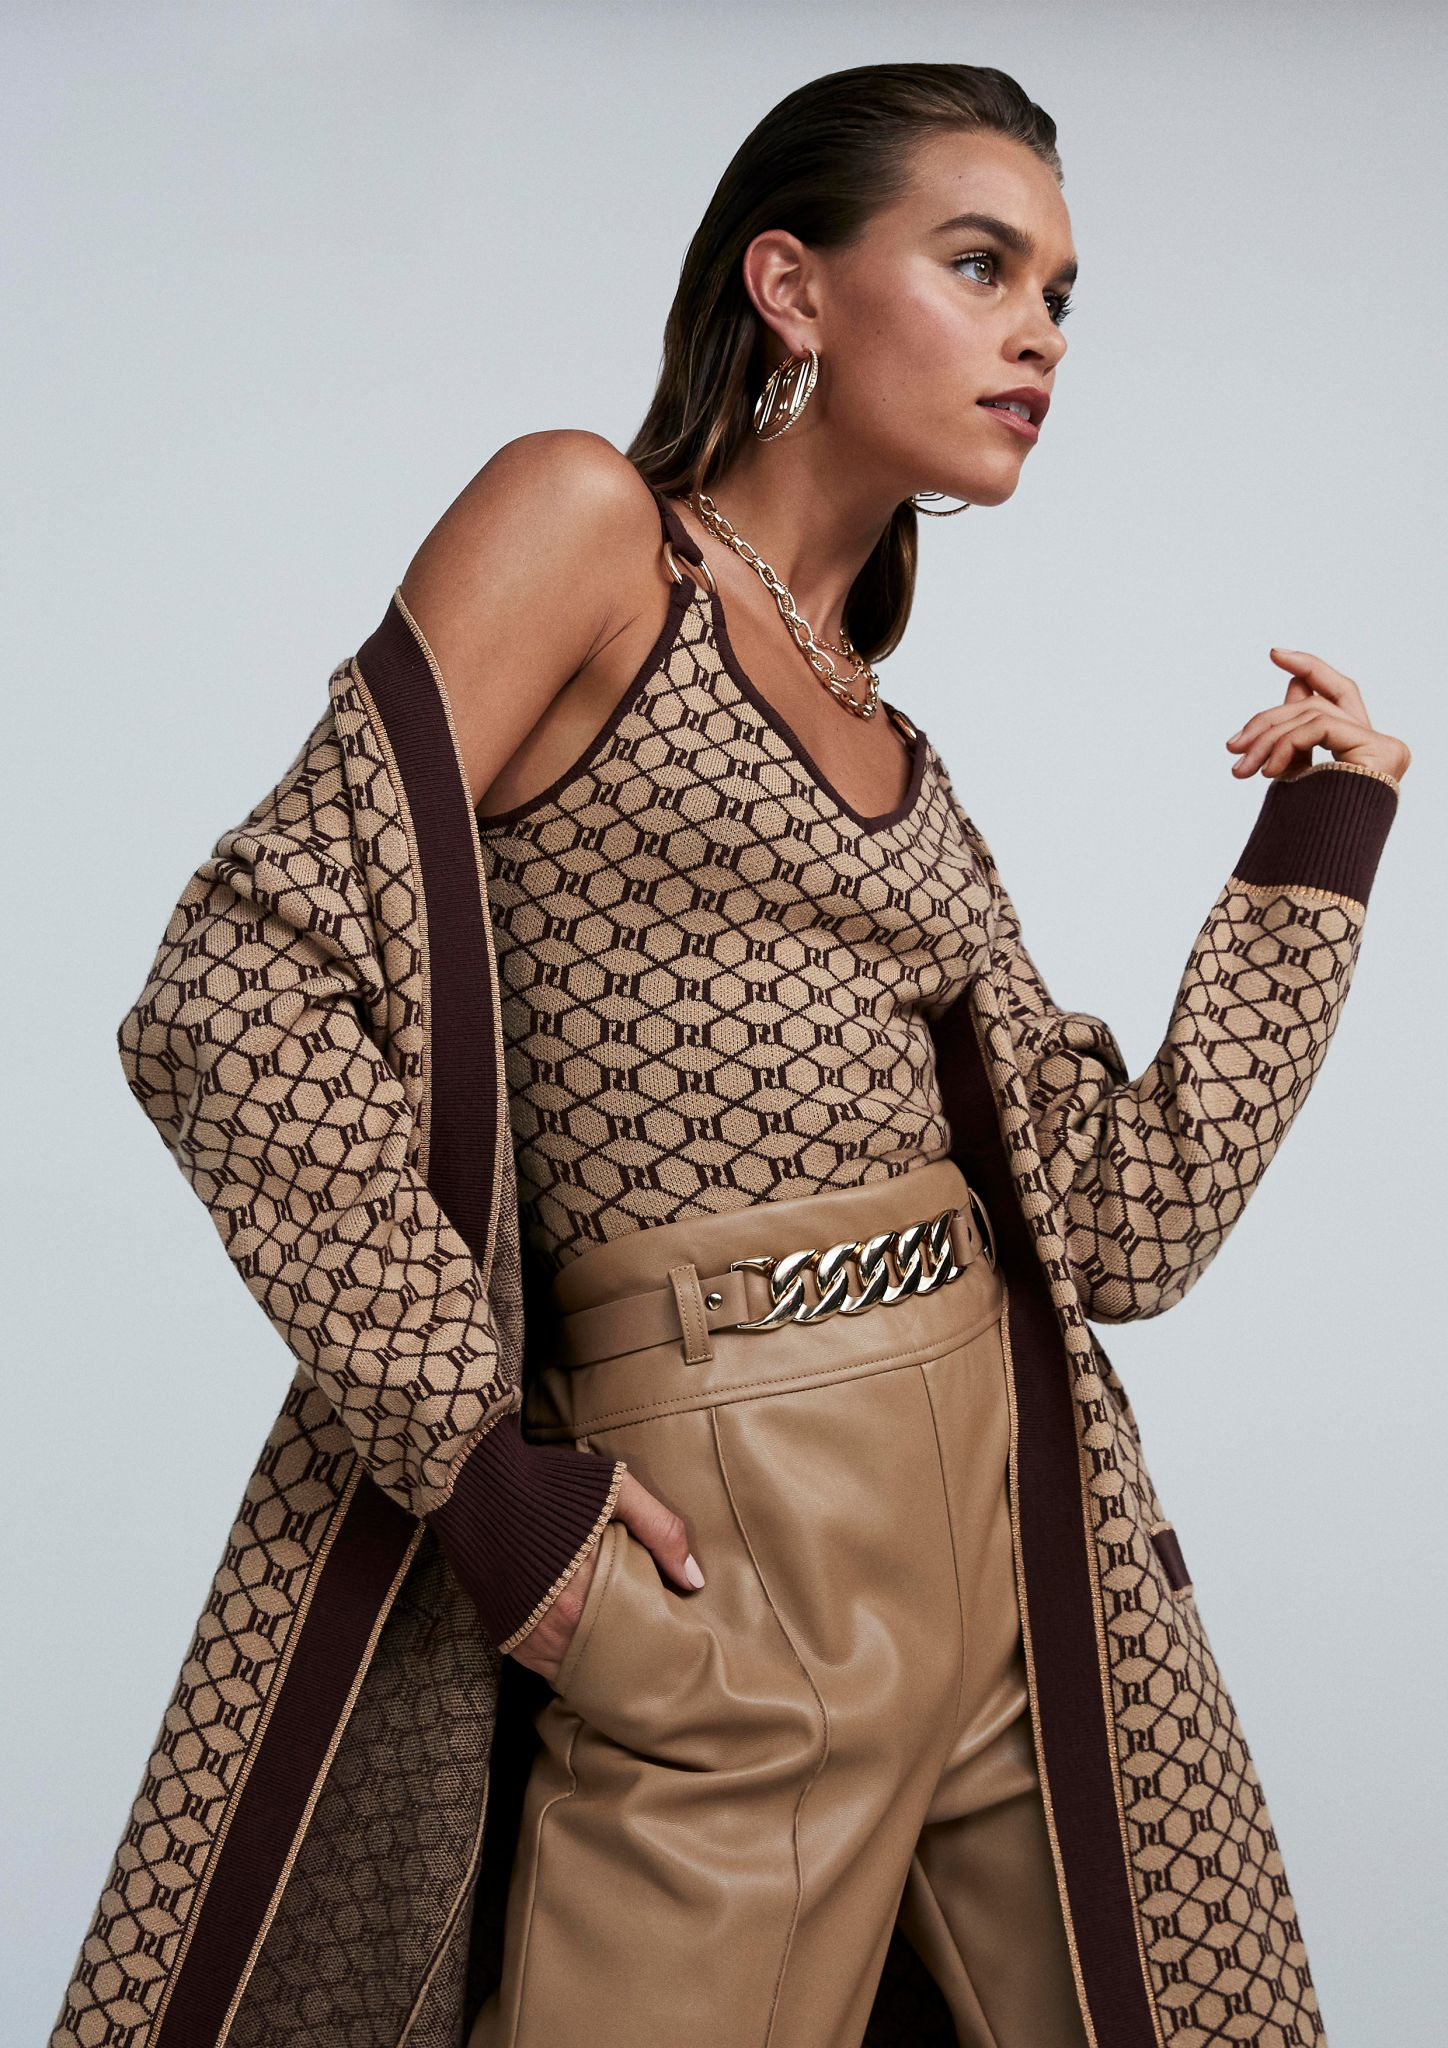 Female model for River Island showcasing tan coloured clothing from their Autumn collection